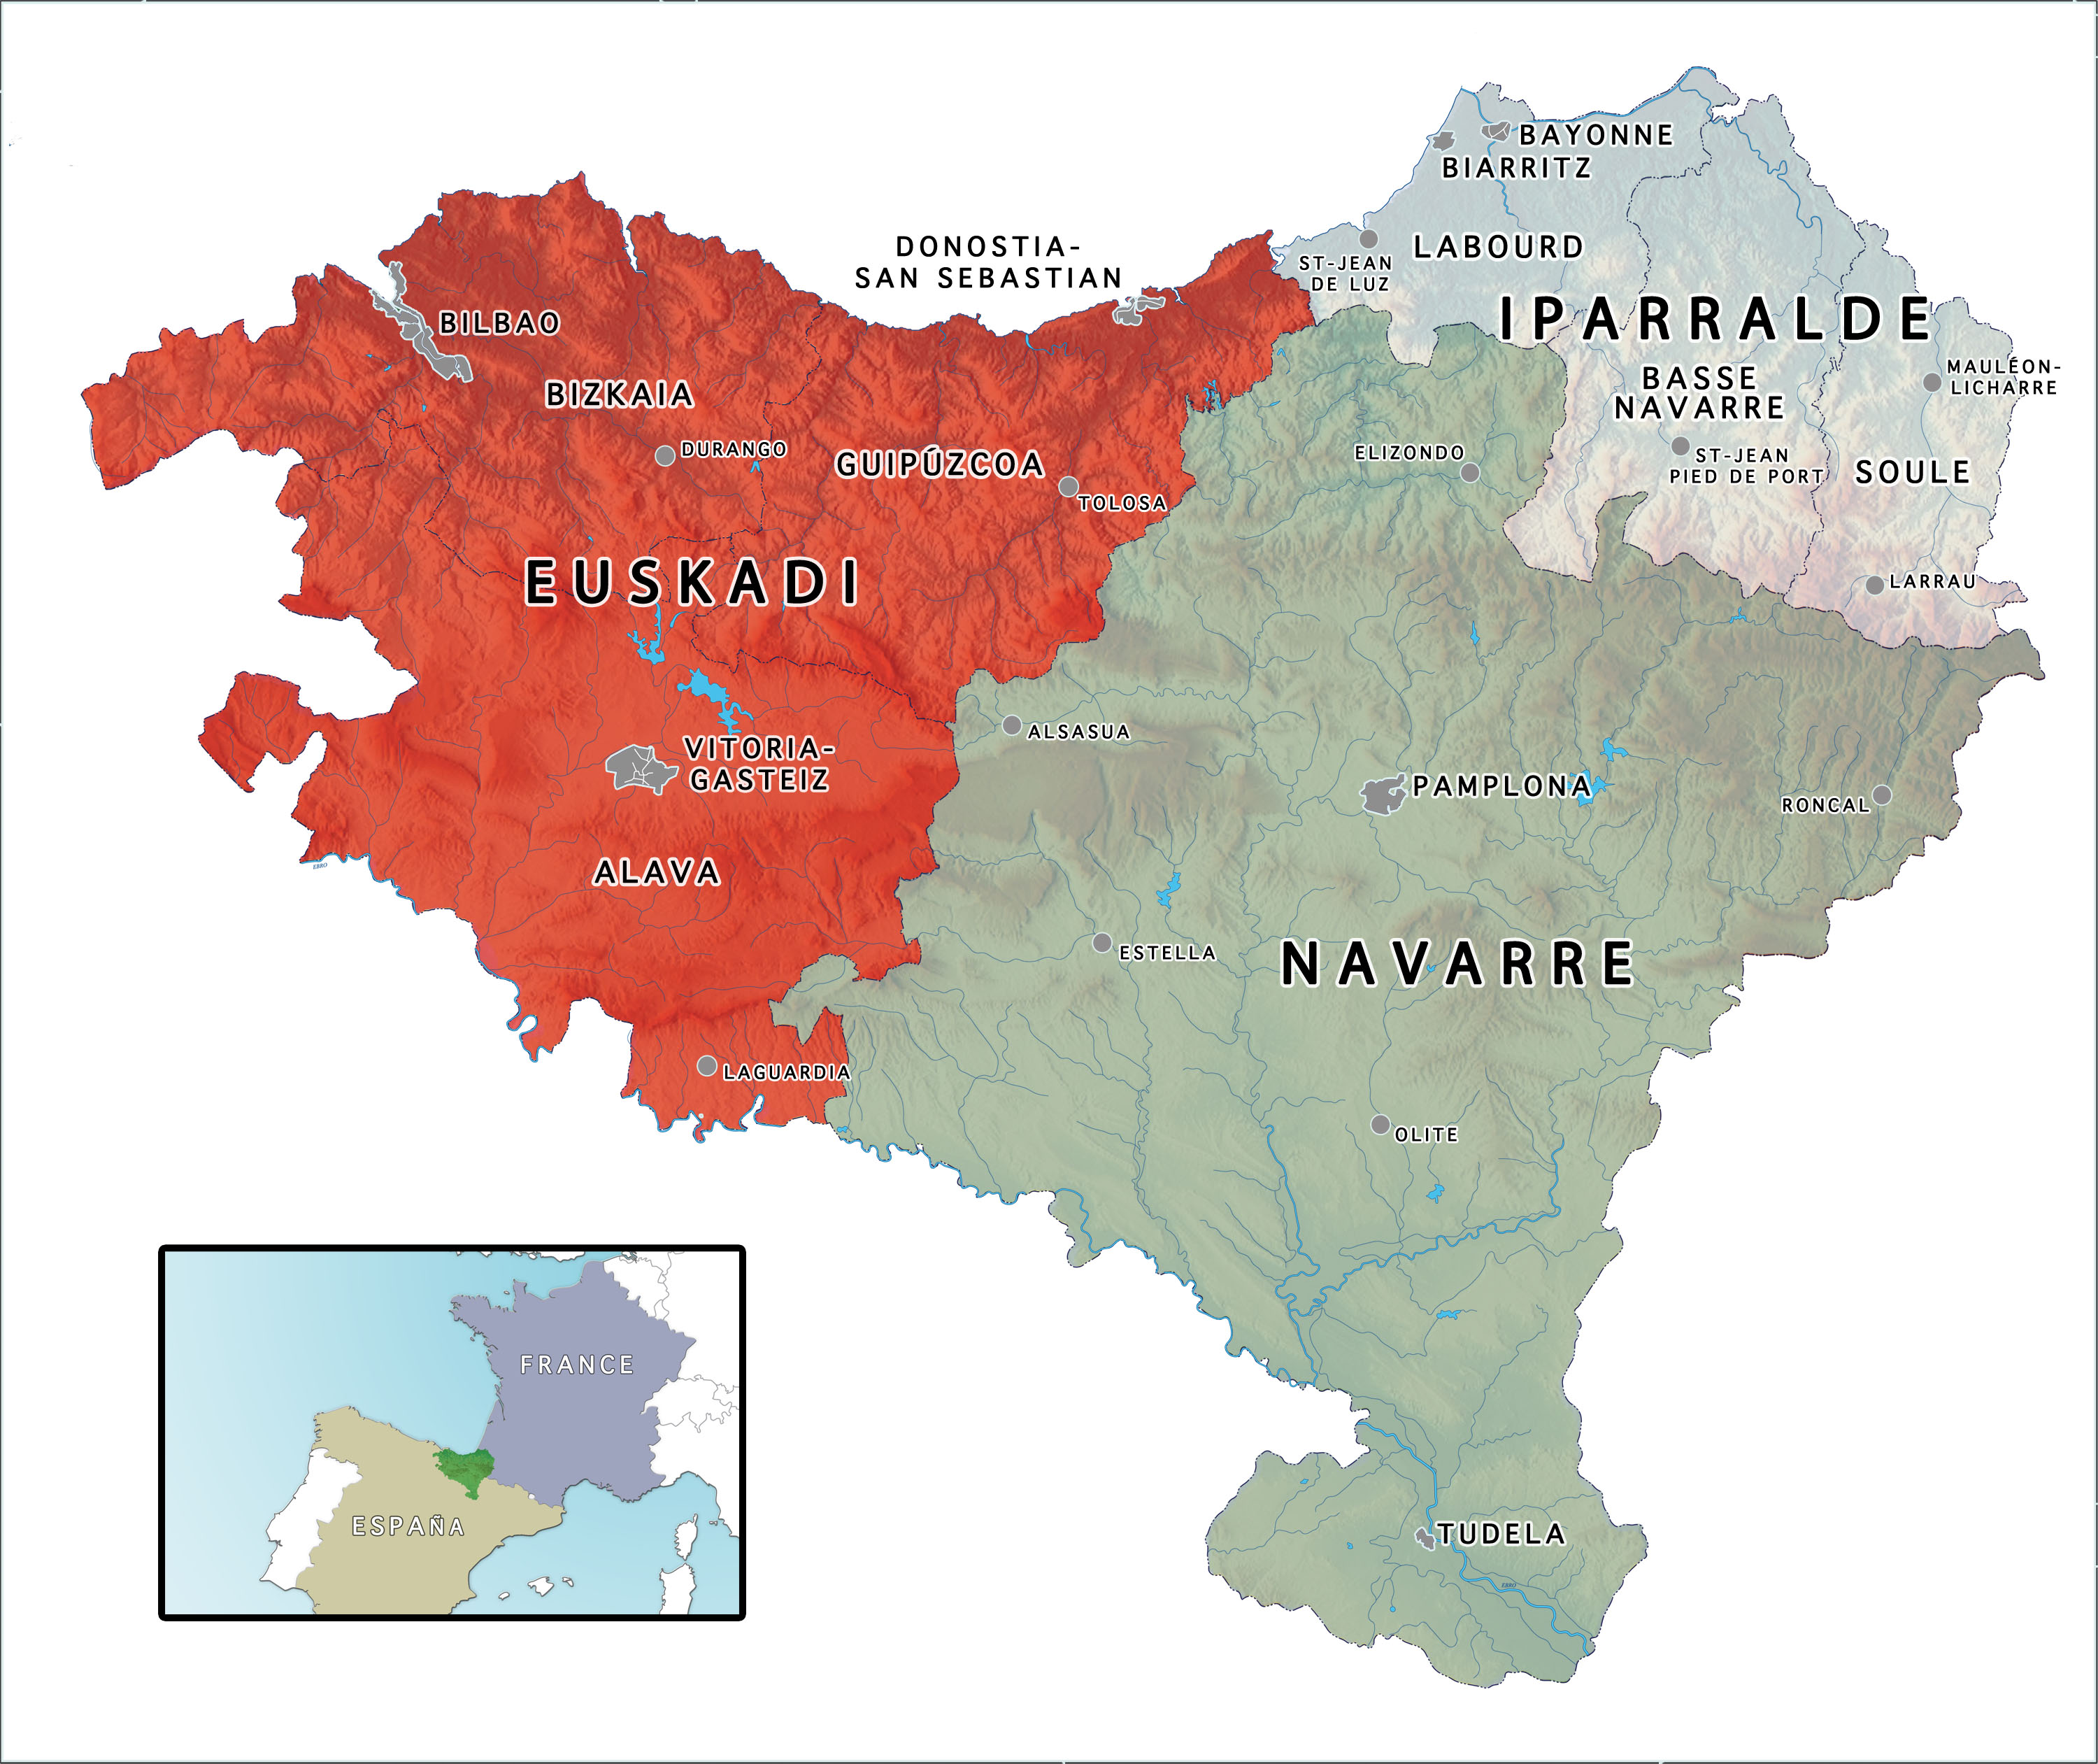 THE BASQUE COUNTRY - Map